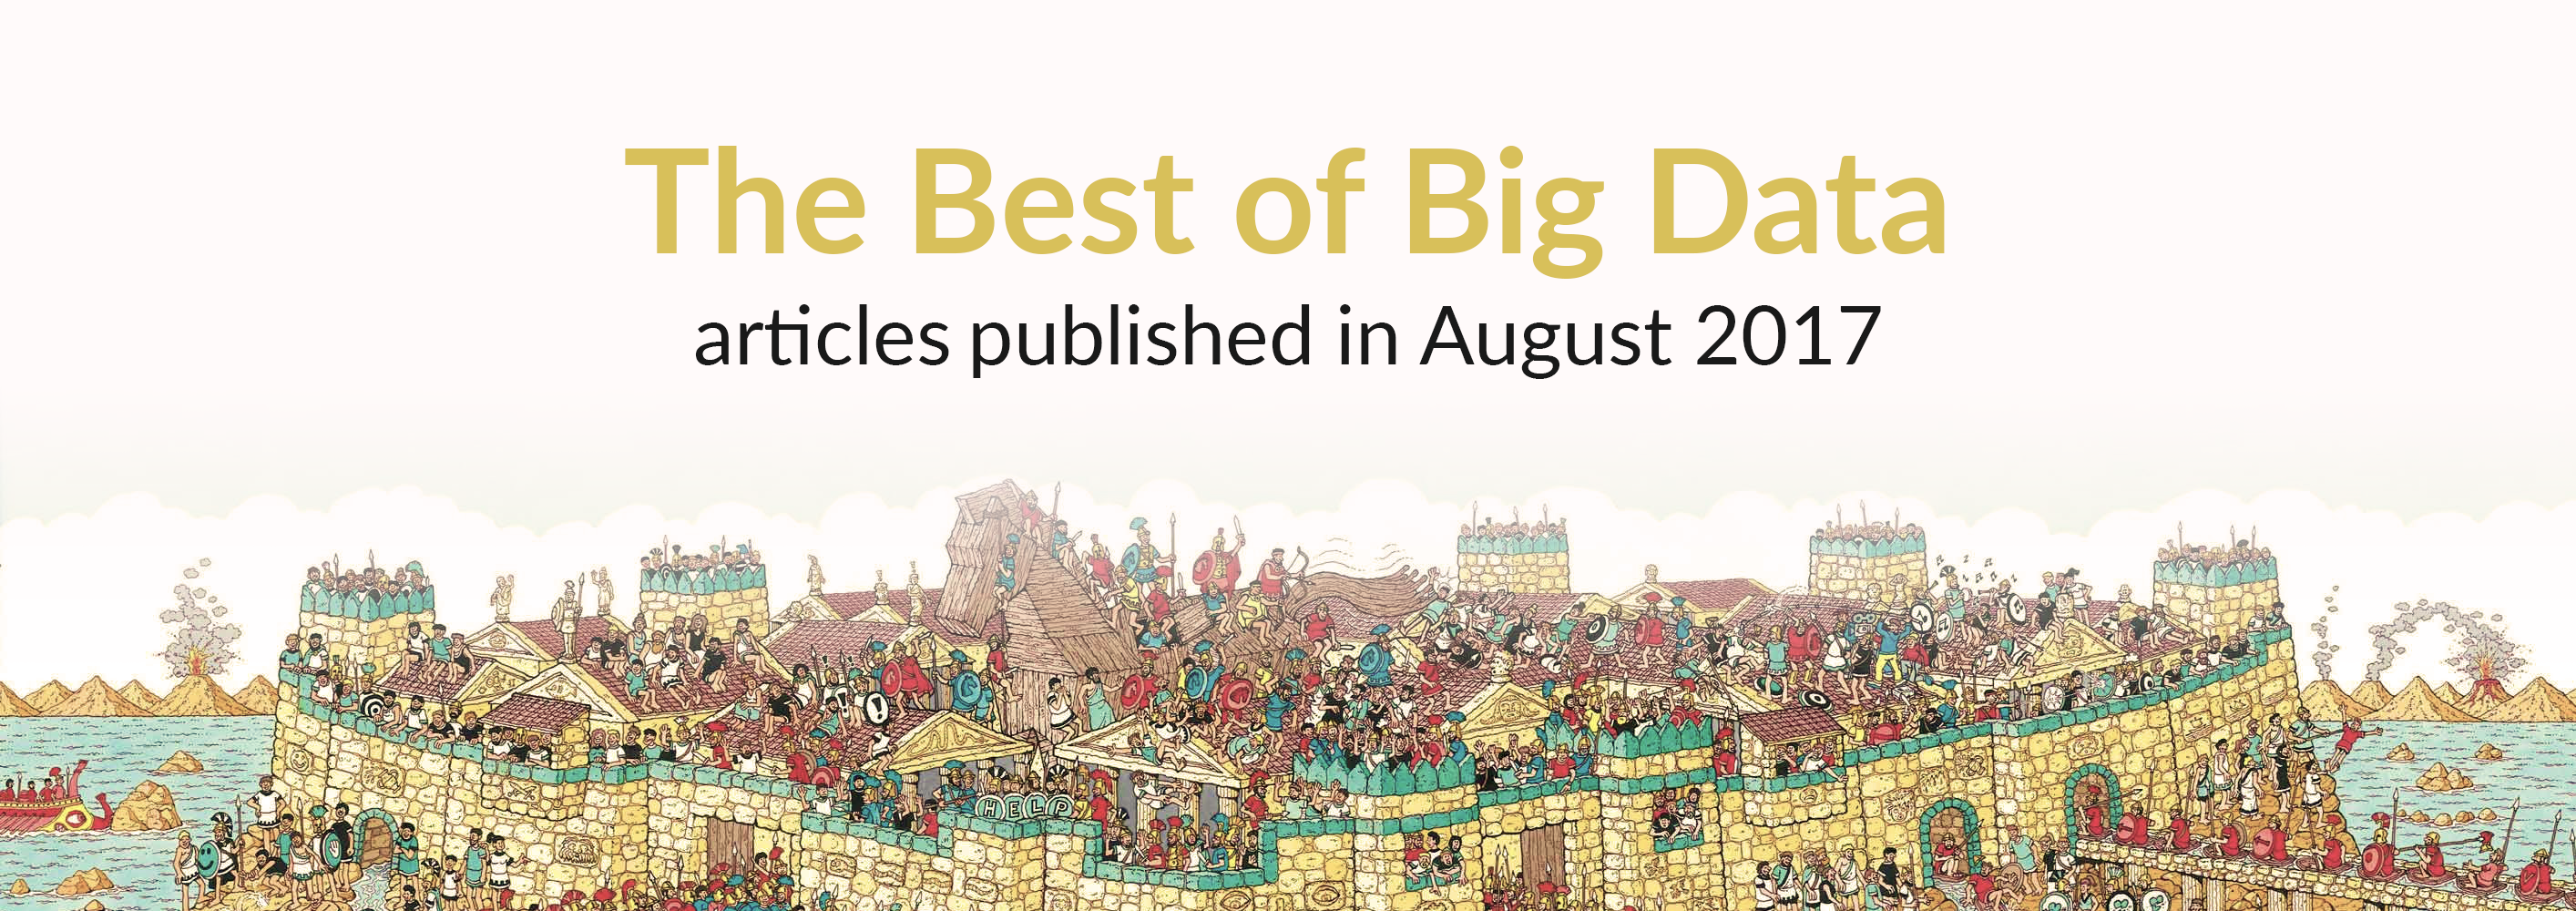 The Best of Big Data: New Articles Published This Month